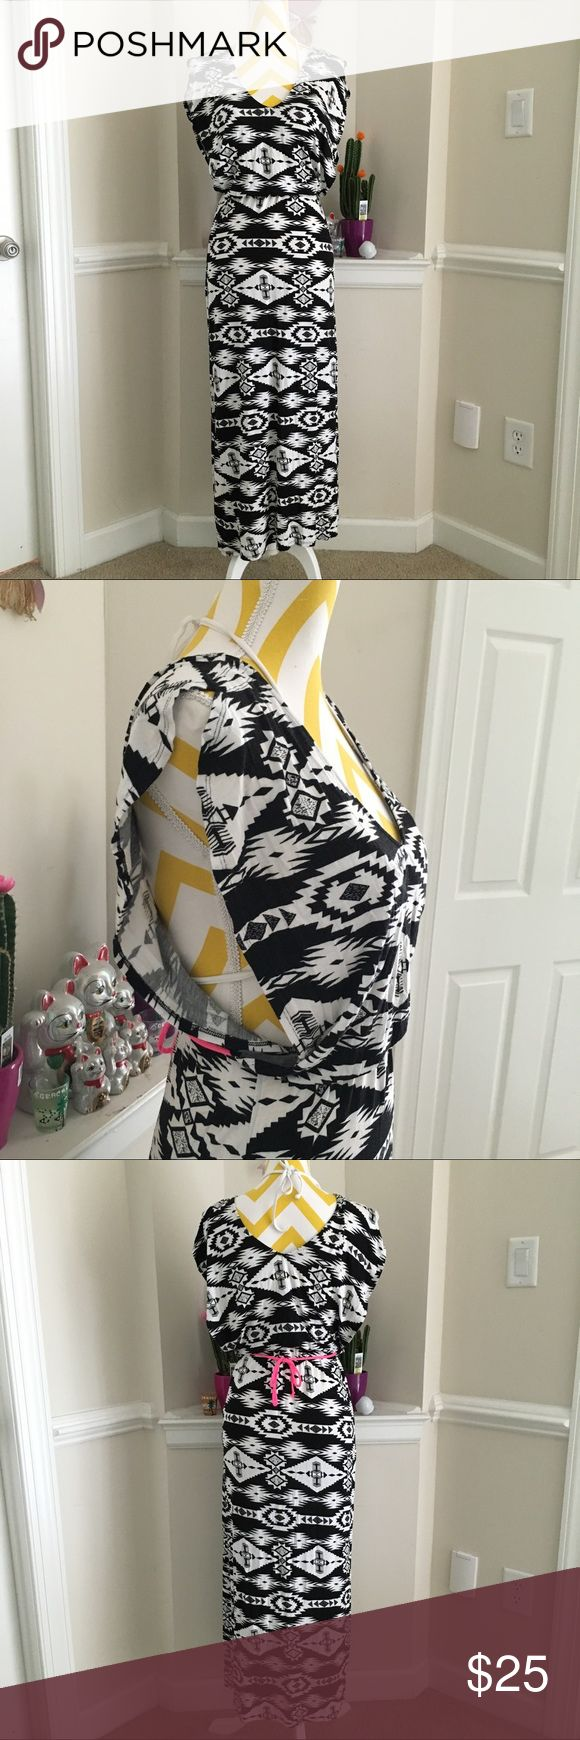 Black Aztec beach maxi dress Used once then washed, no flaws. No brand Dresses Maxi